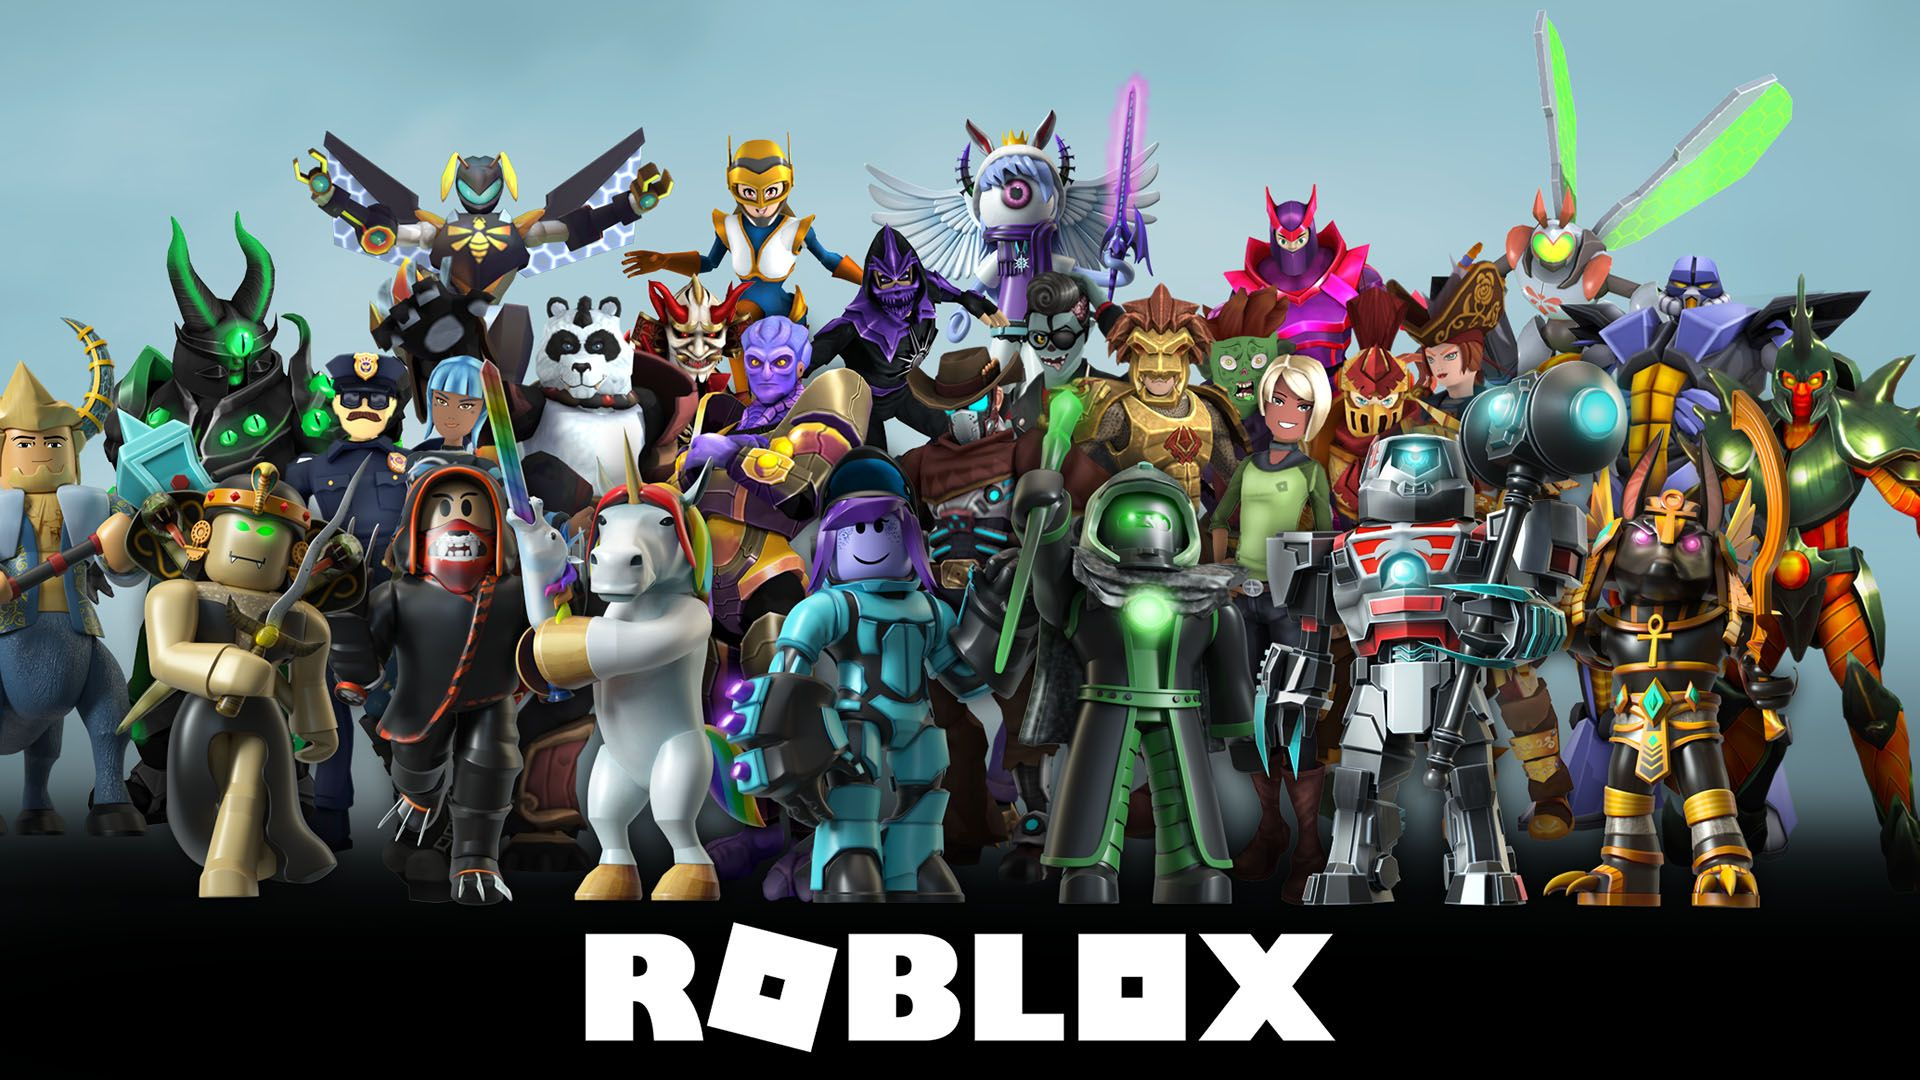 Cool Background Roblox Wallpaper